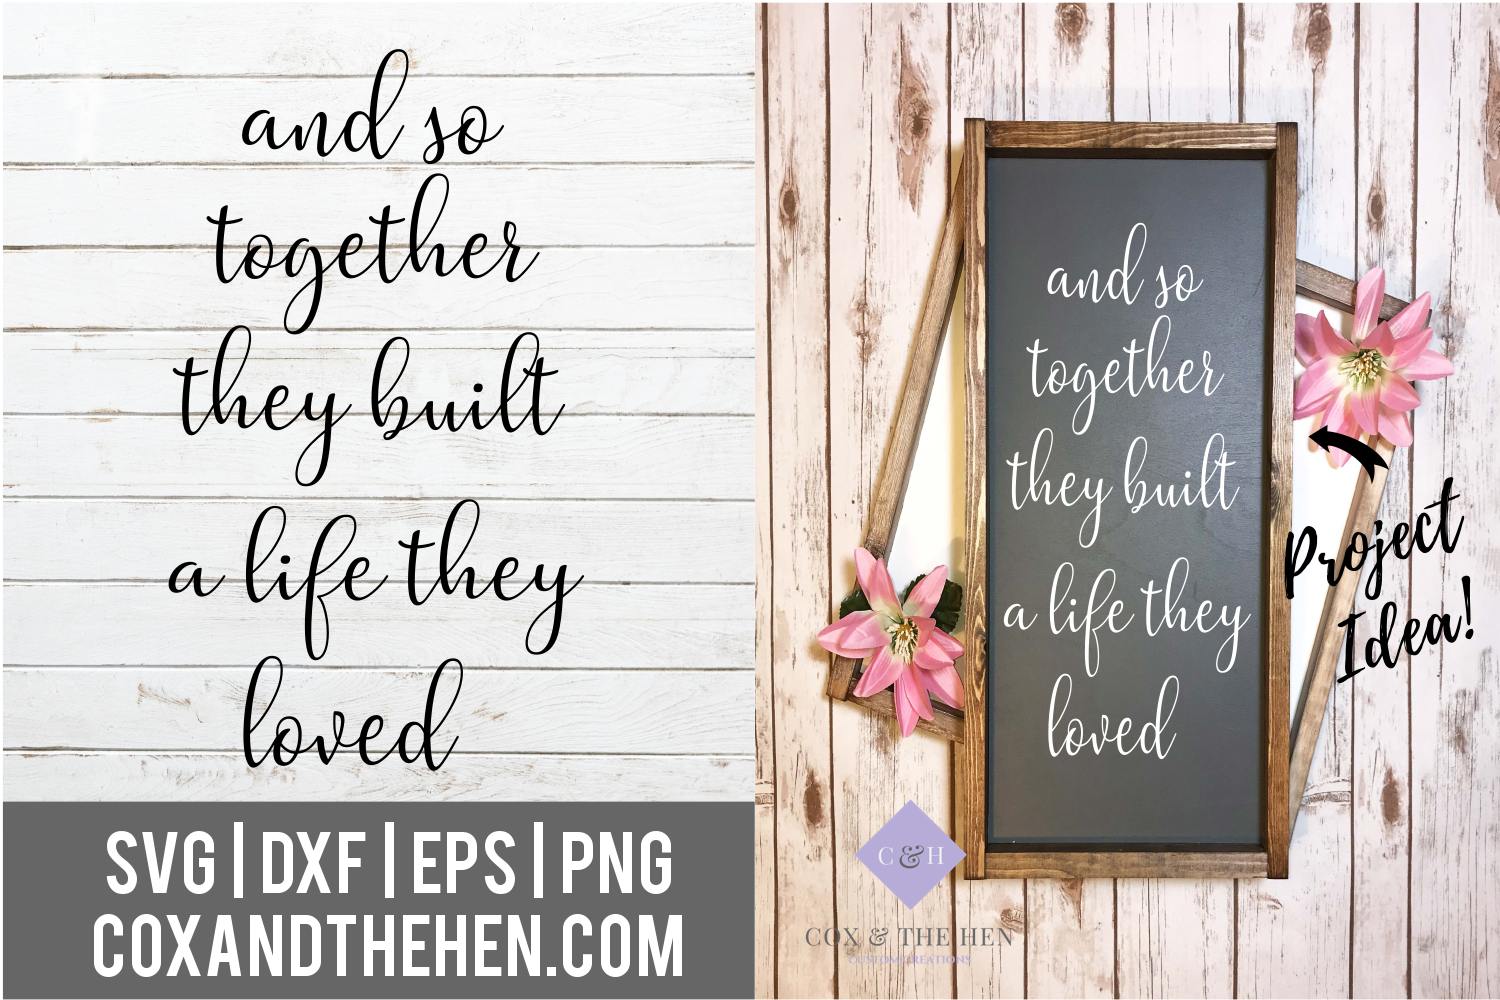 1560+ Together They Built A Life They Loved Svg by Designbunle